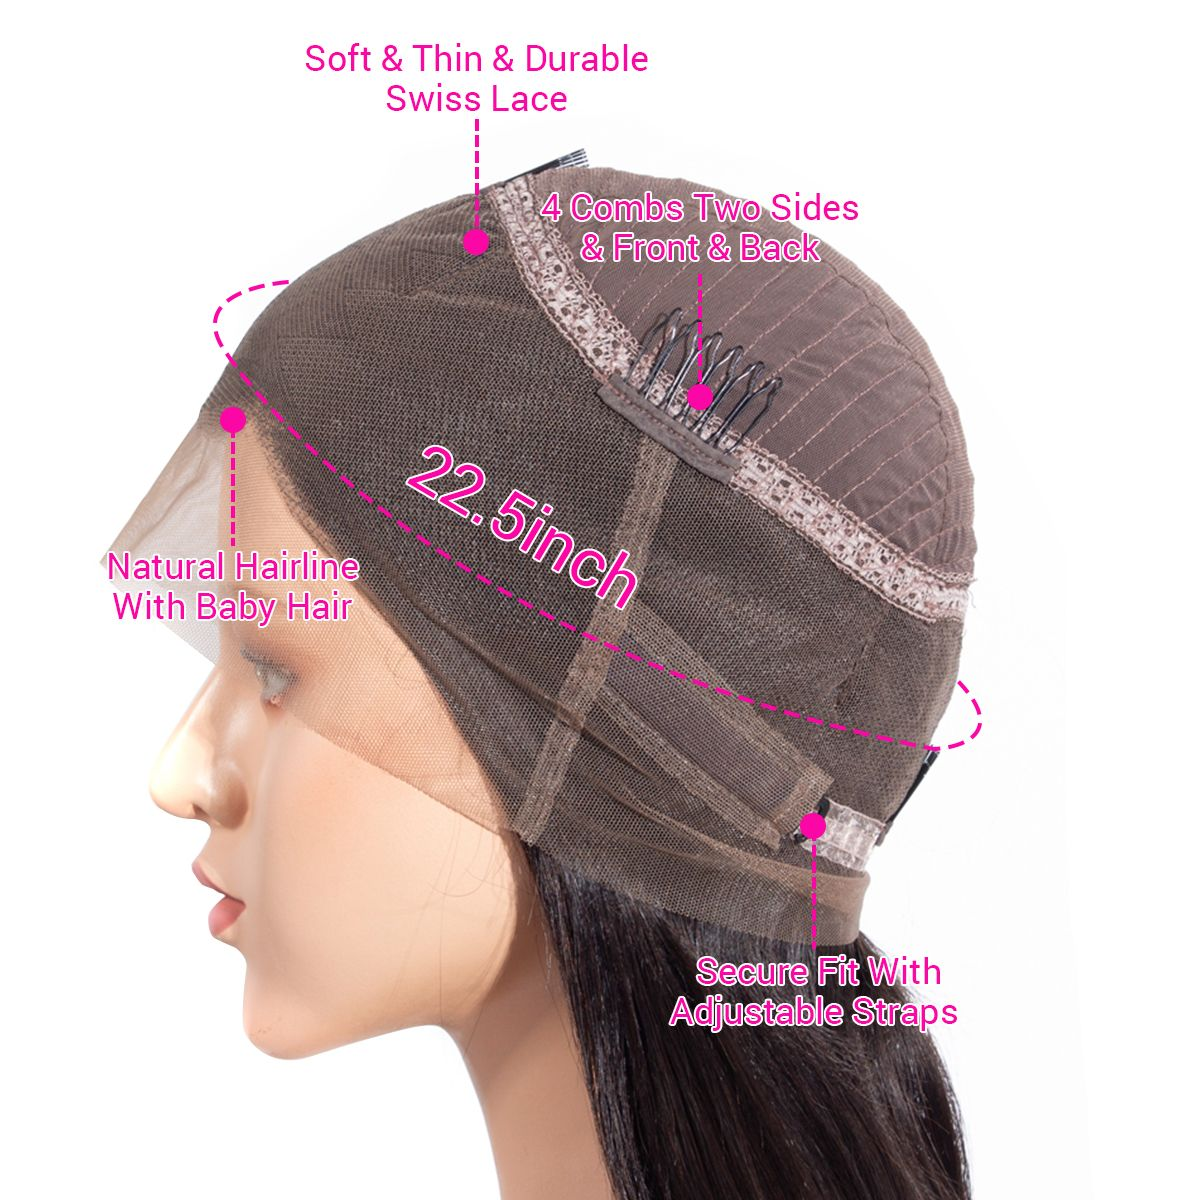 360 lace frontal wig details